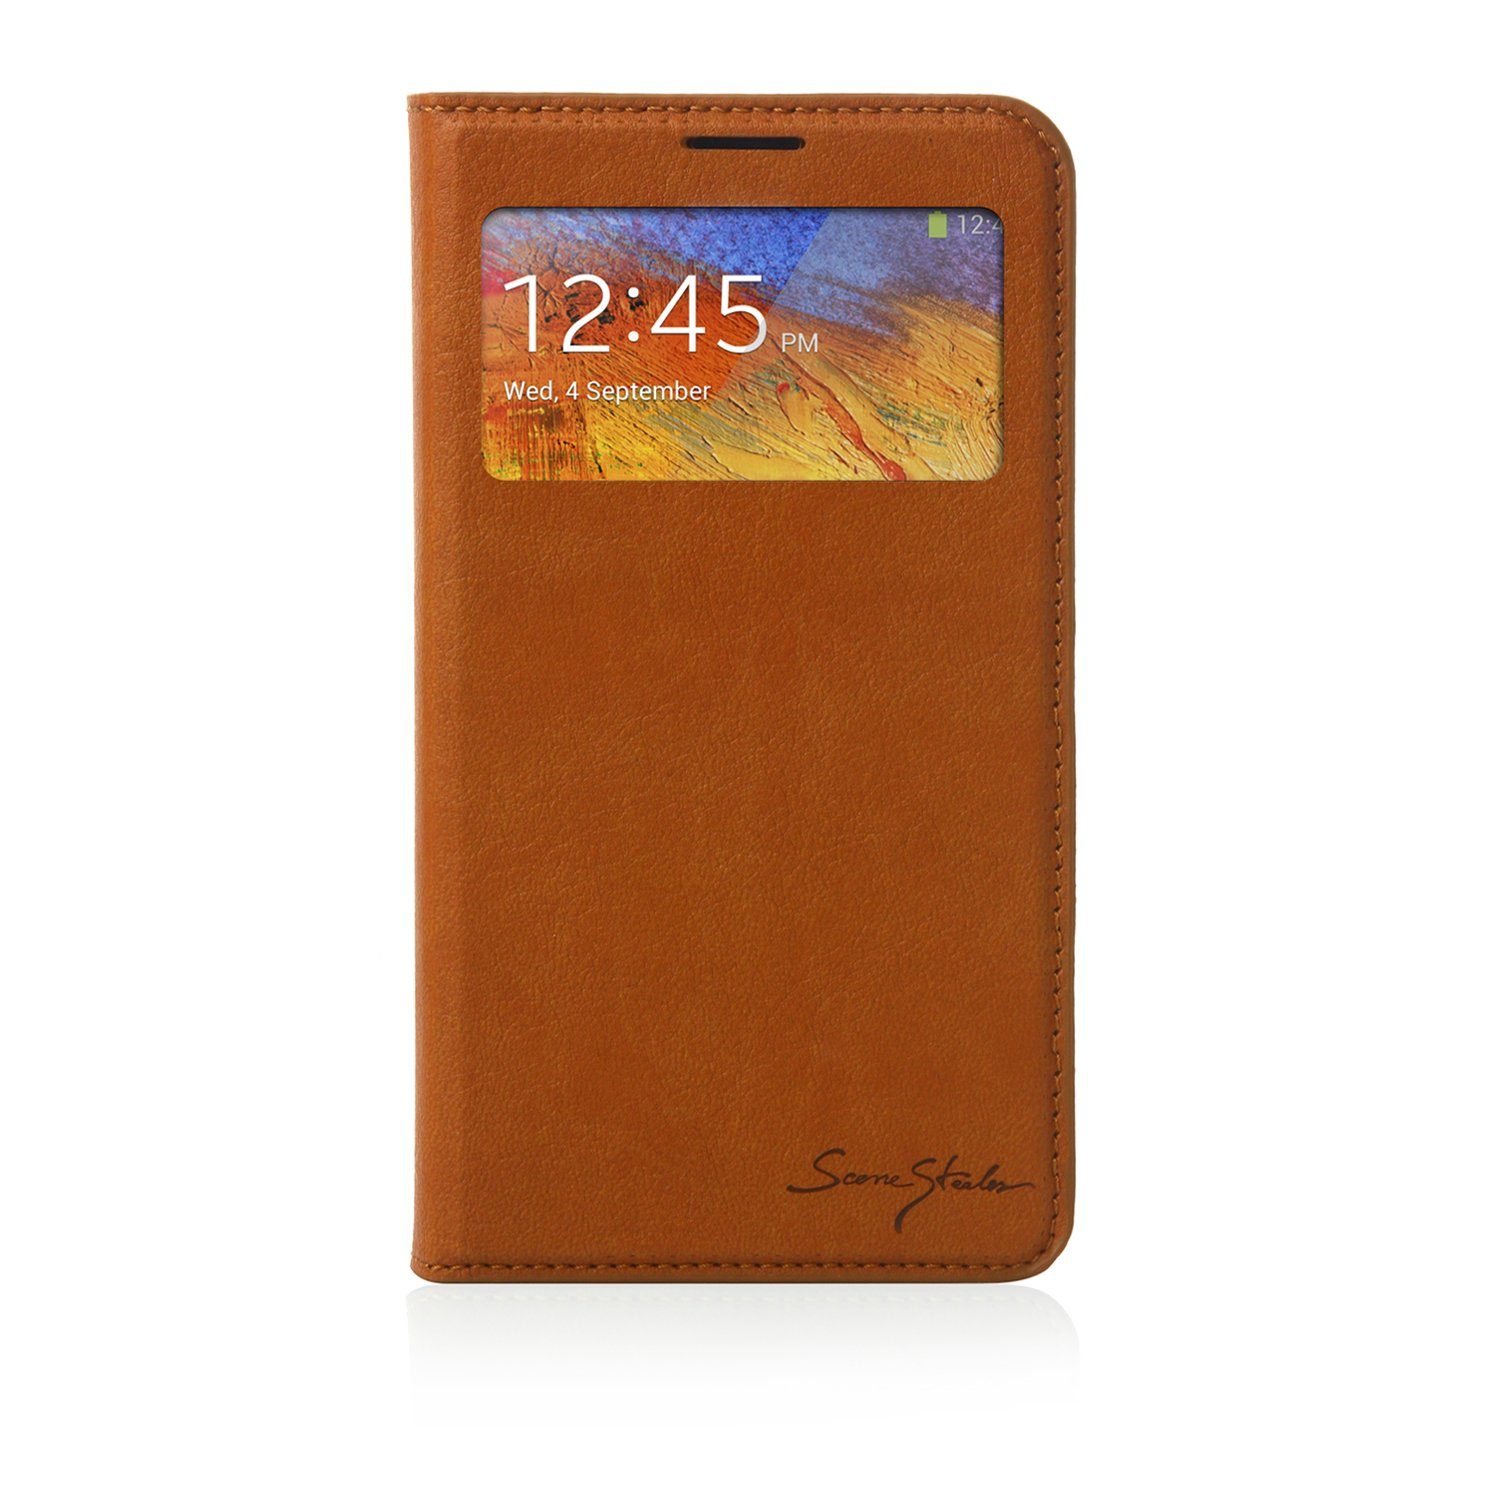 Samsung Galaxy Note 3 Case Italian Standing Window View - Brown